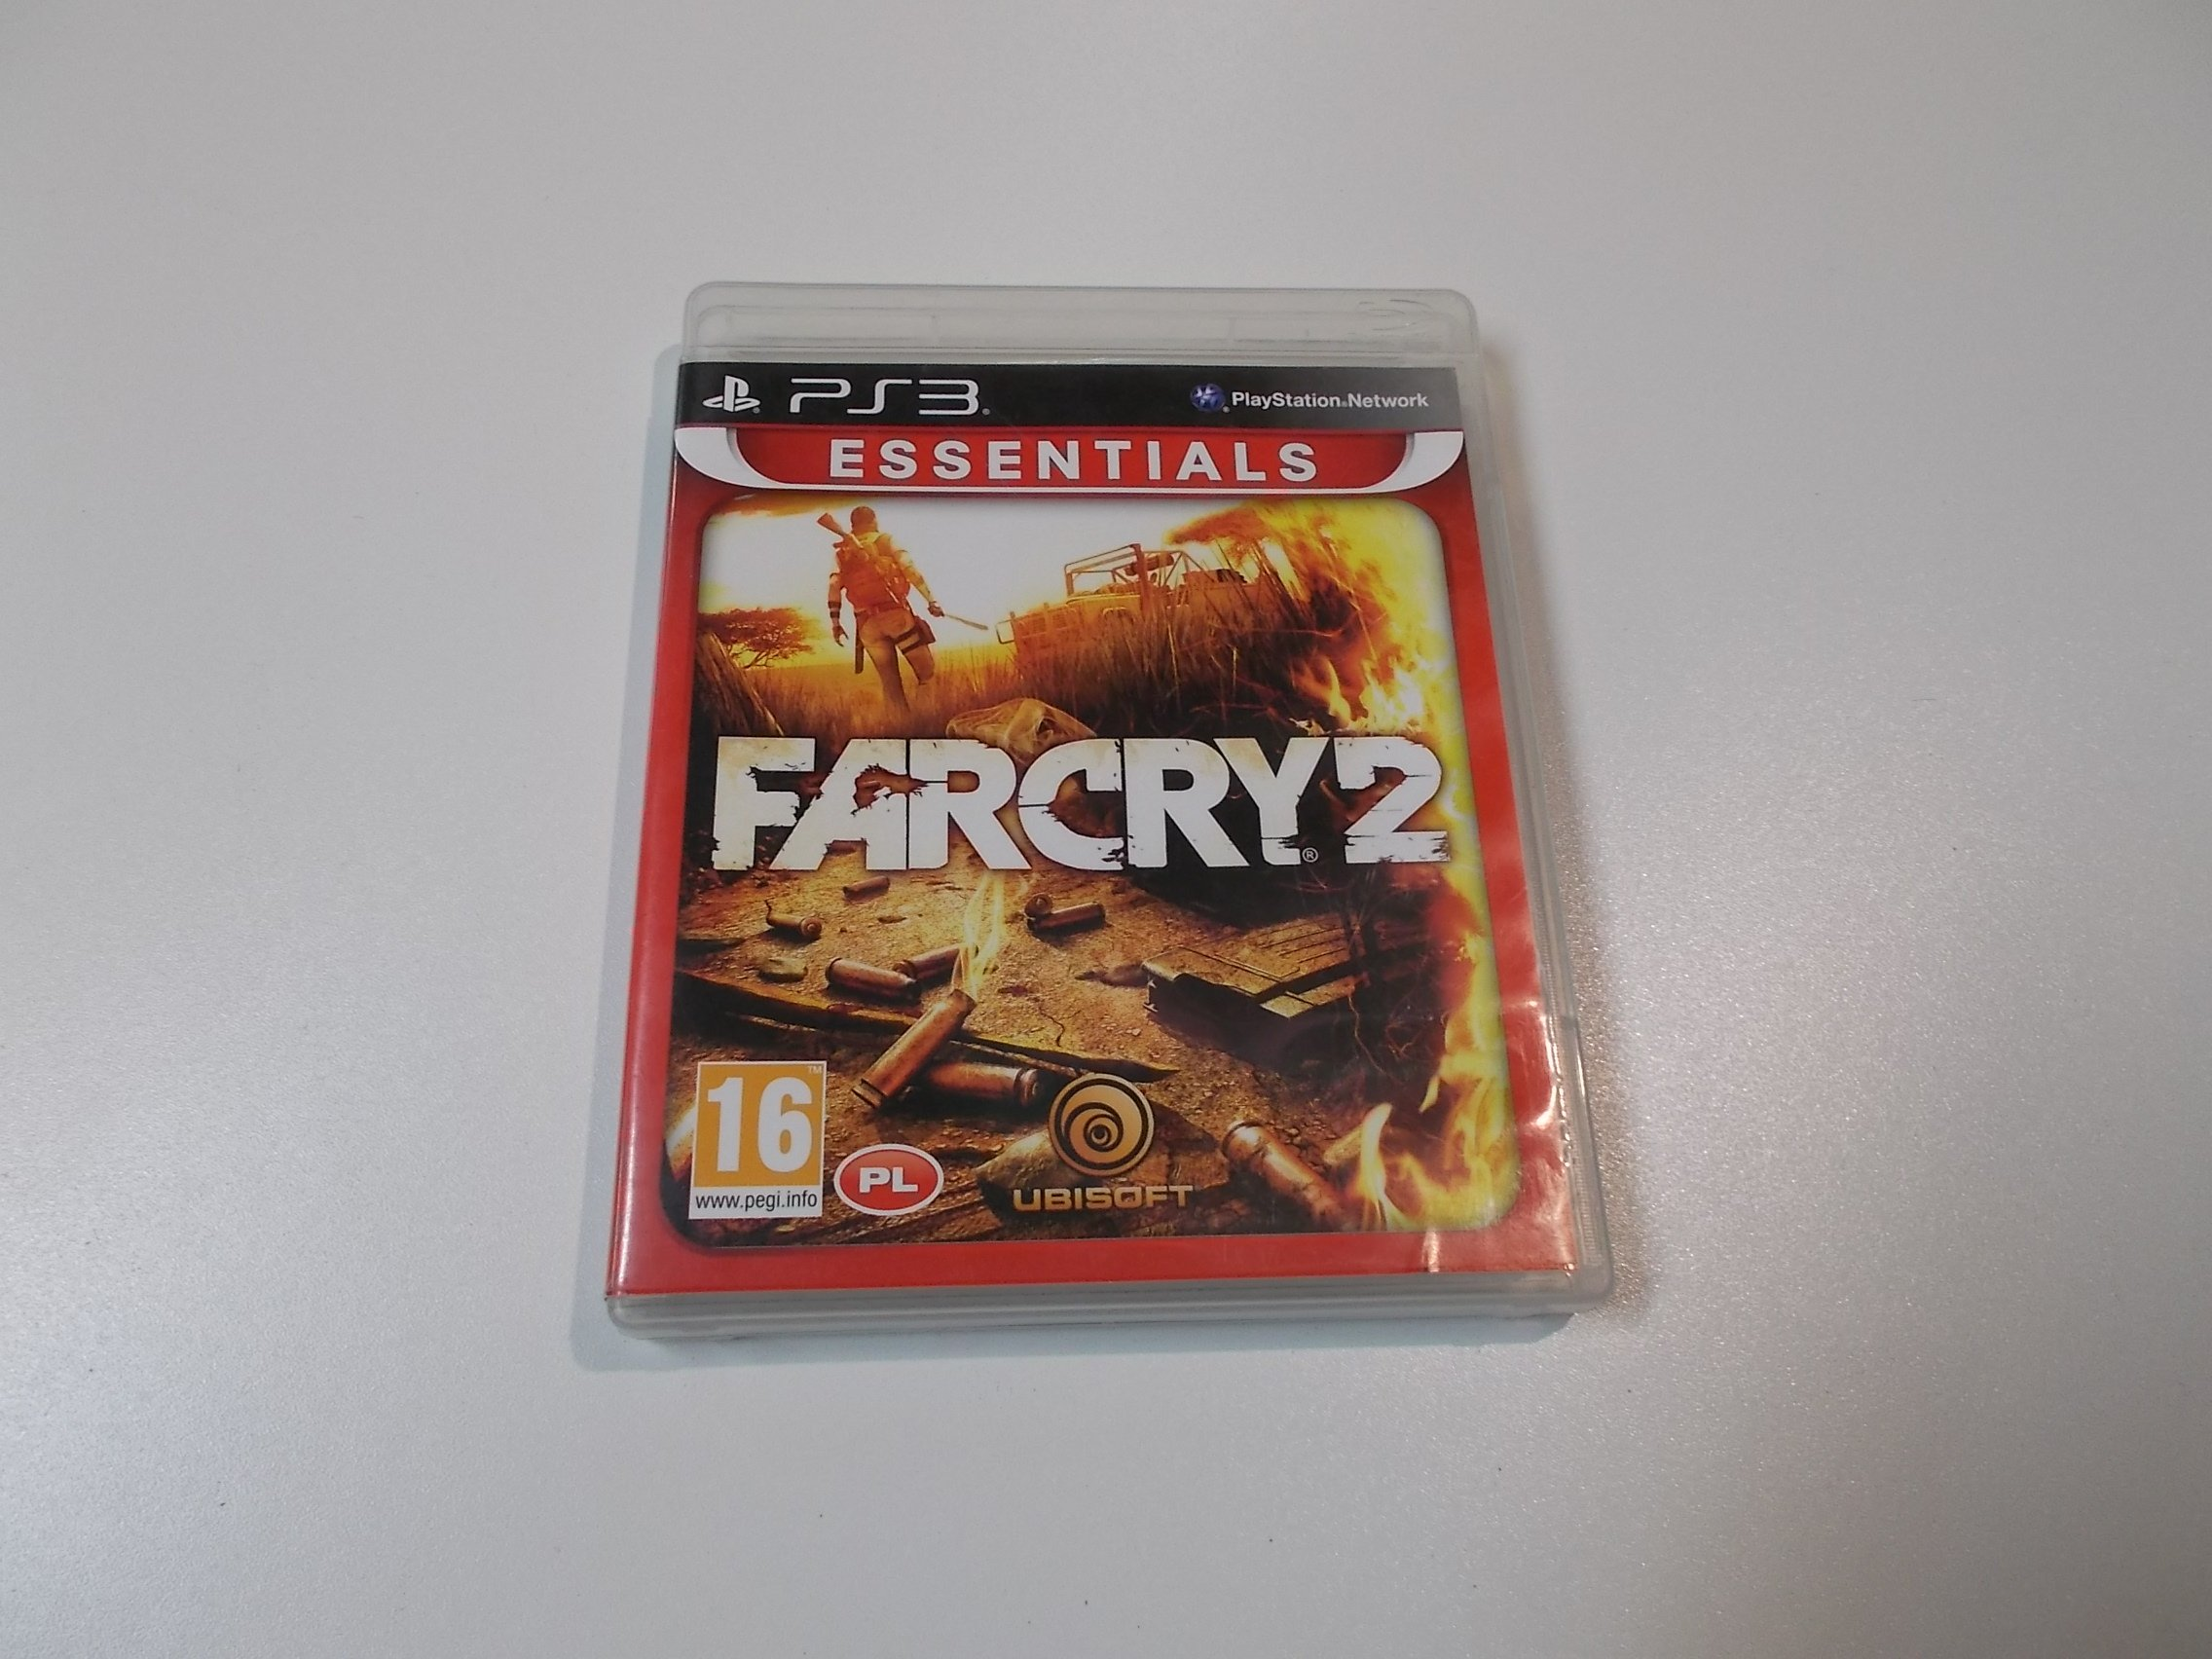 FarCry 2 Far Cry 2 - GRA Ps3 - Sklep